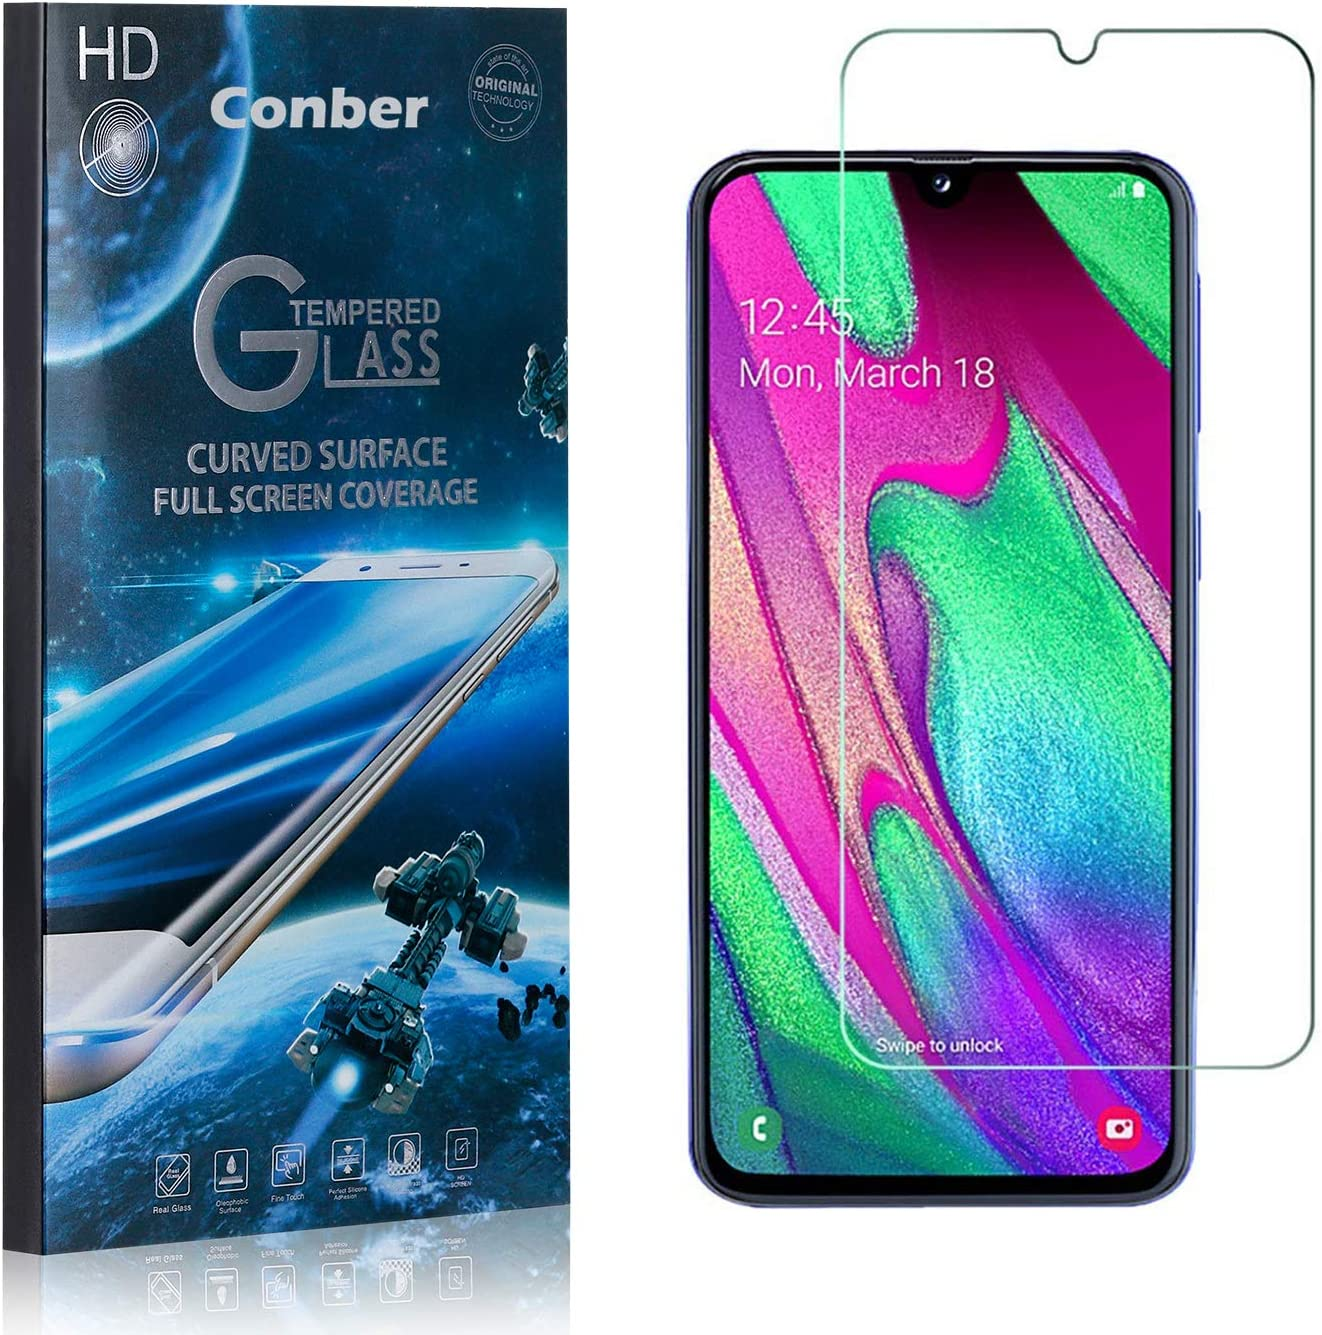 Conber Anti-Shatter 2 Pack Scratch-Resistant Screen Protector for Samsung Galaxy A40, Case Friendly Premium Tempered Glass Screen Protector for Samsung Galaxy A40